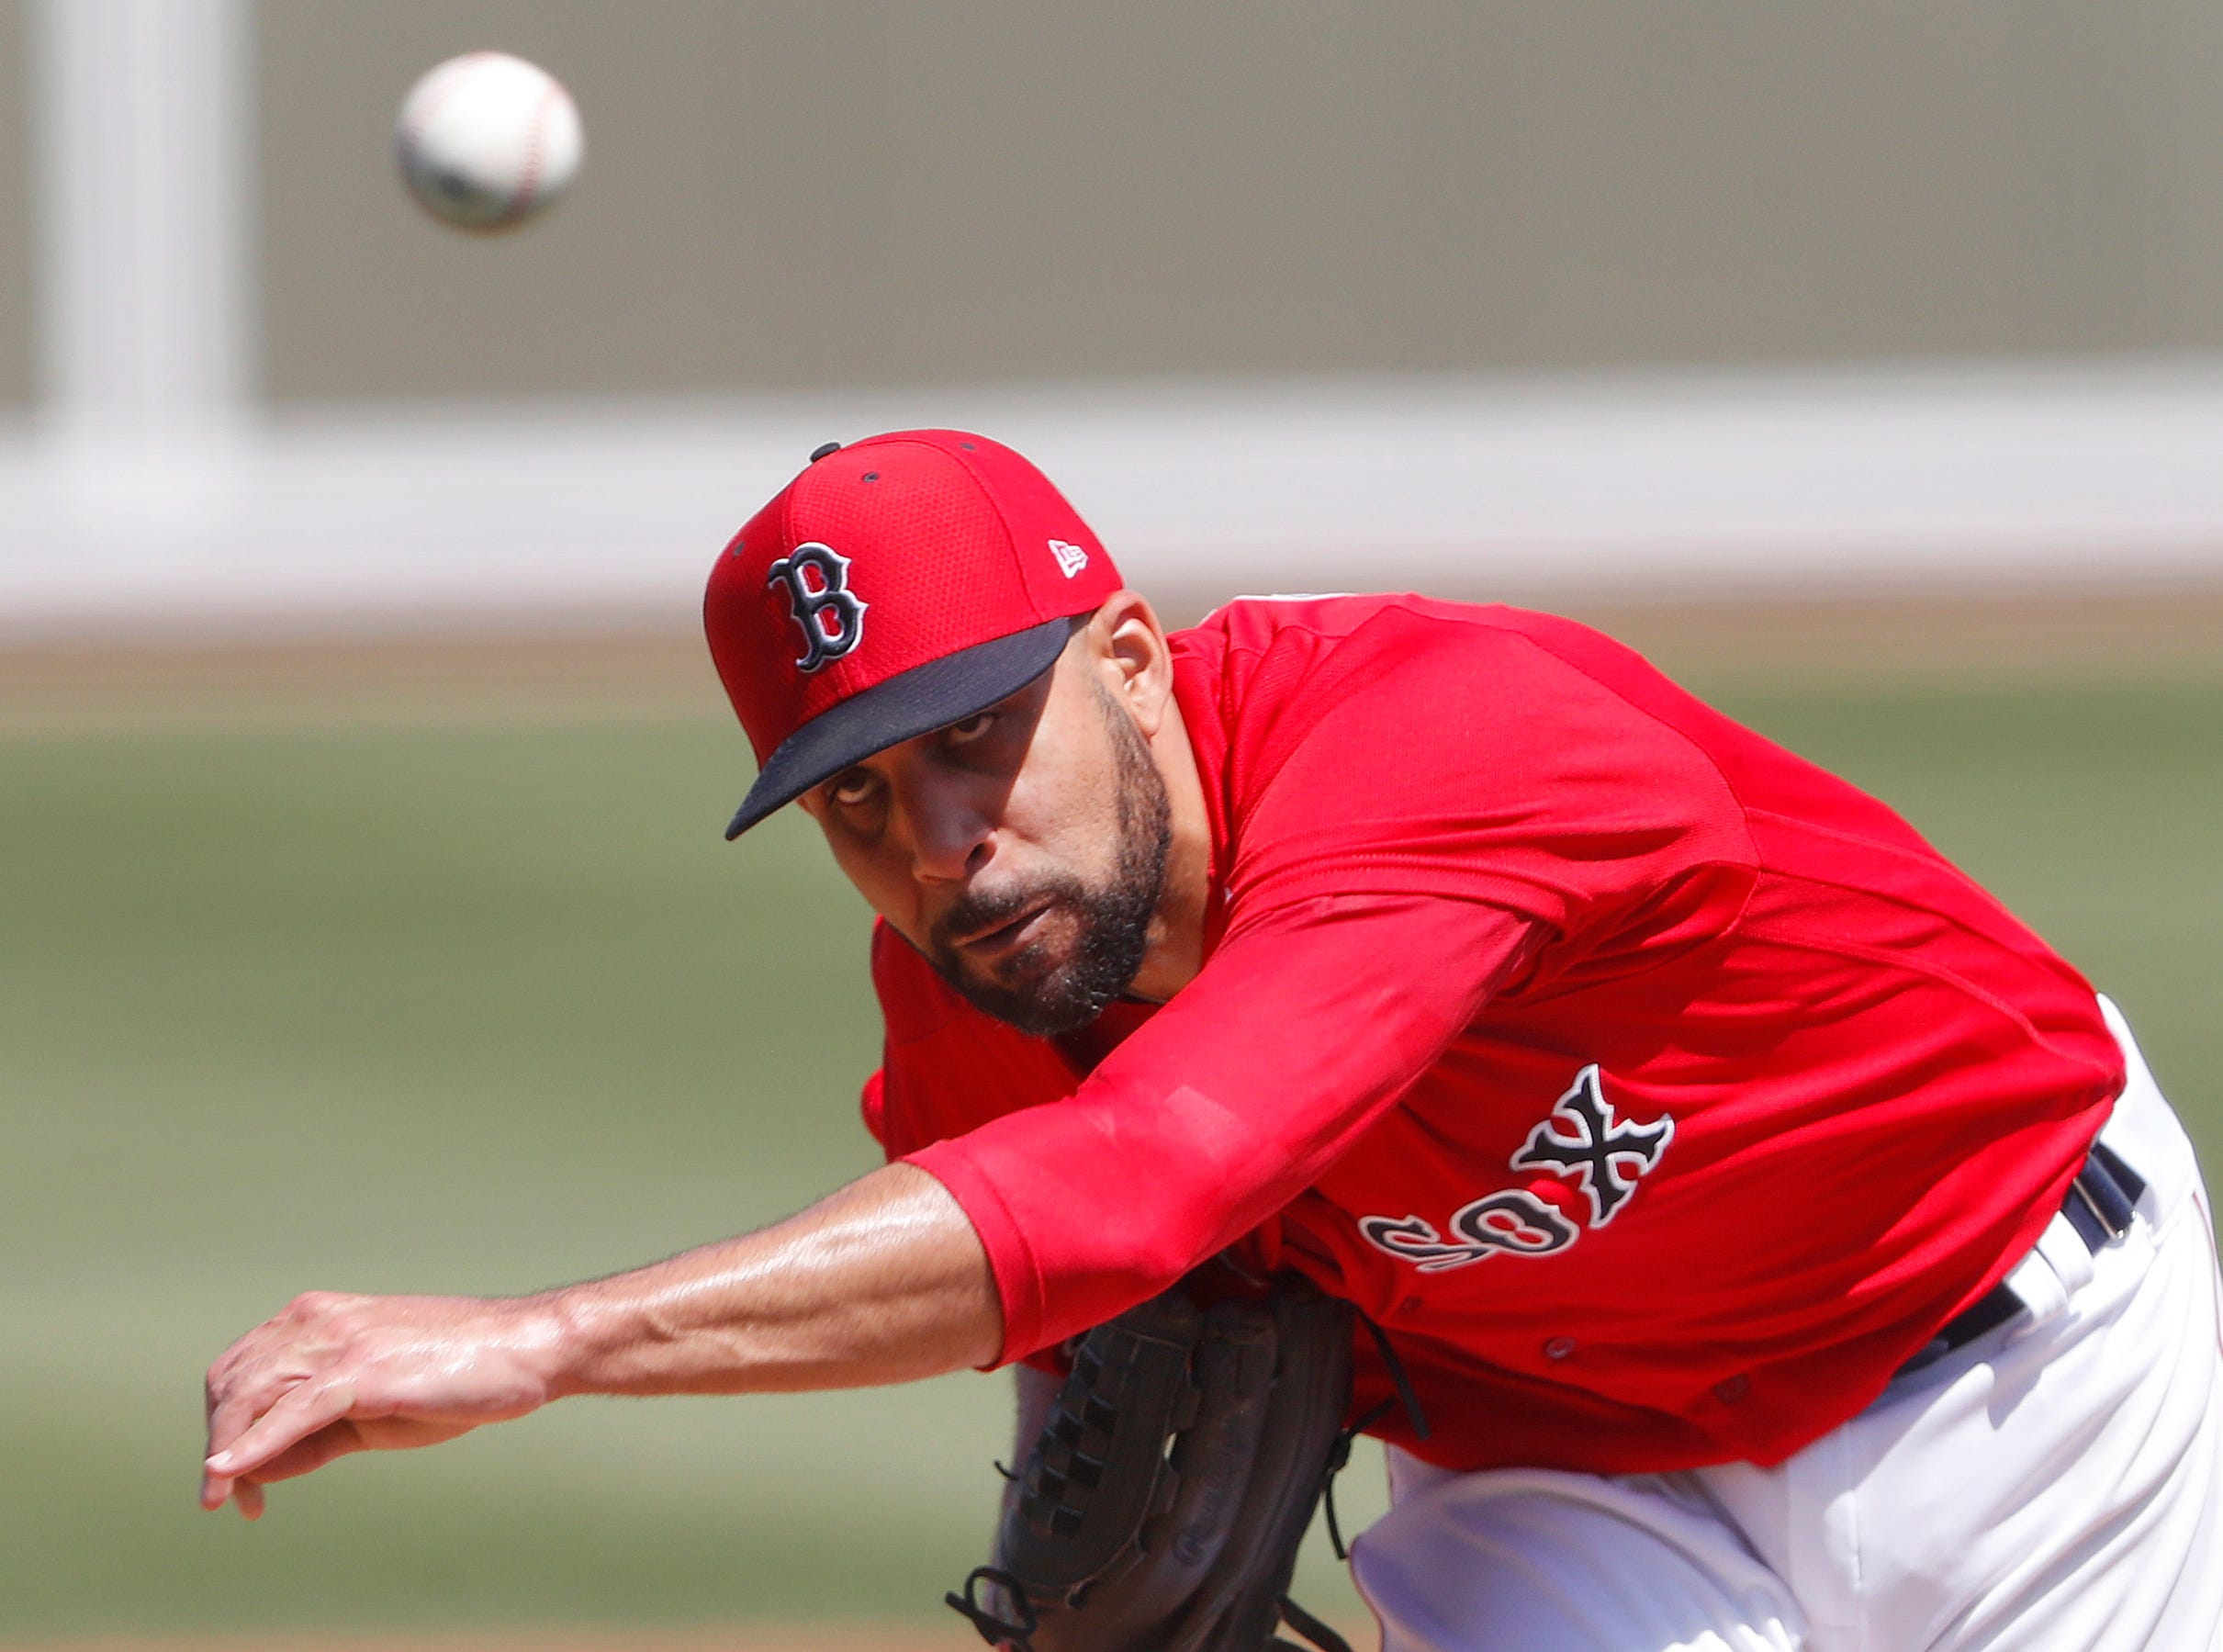 Boston Red Sox starting pitcher David Price delivers a pitch in the second inning of a spring training baseball game against the Detroit Tigers on March 12, 2019, in Fort Myers, Fla.